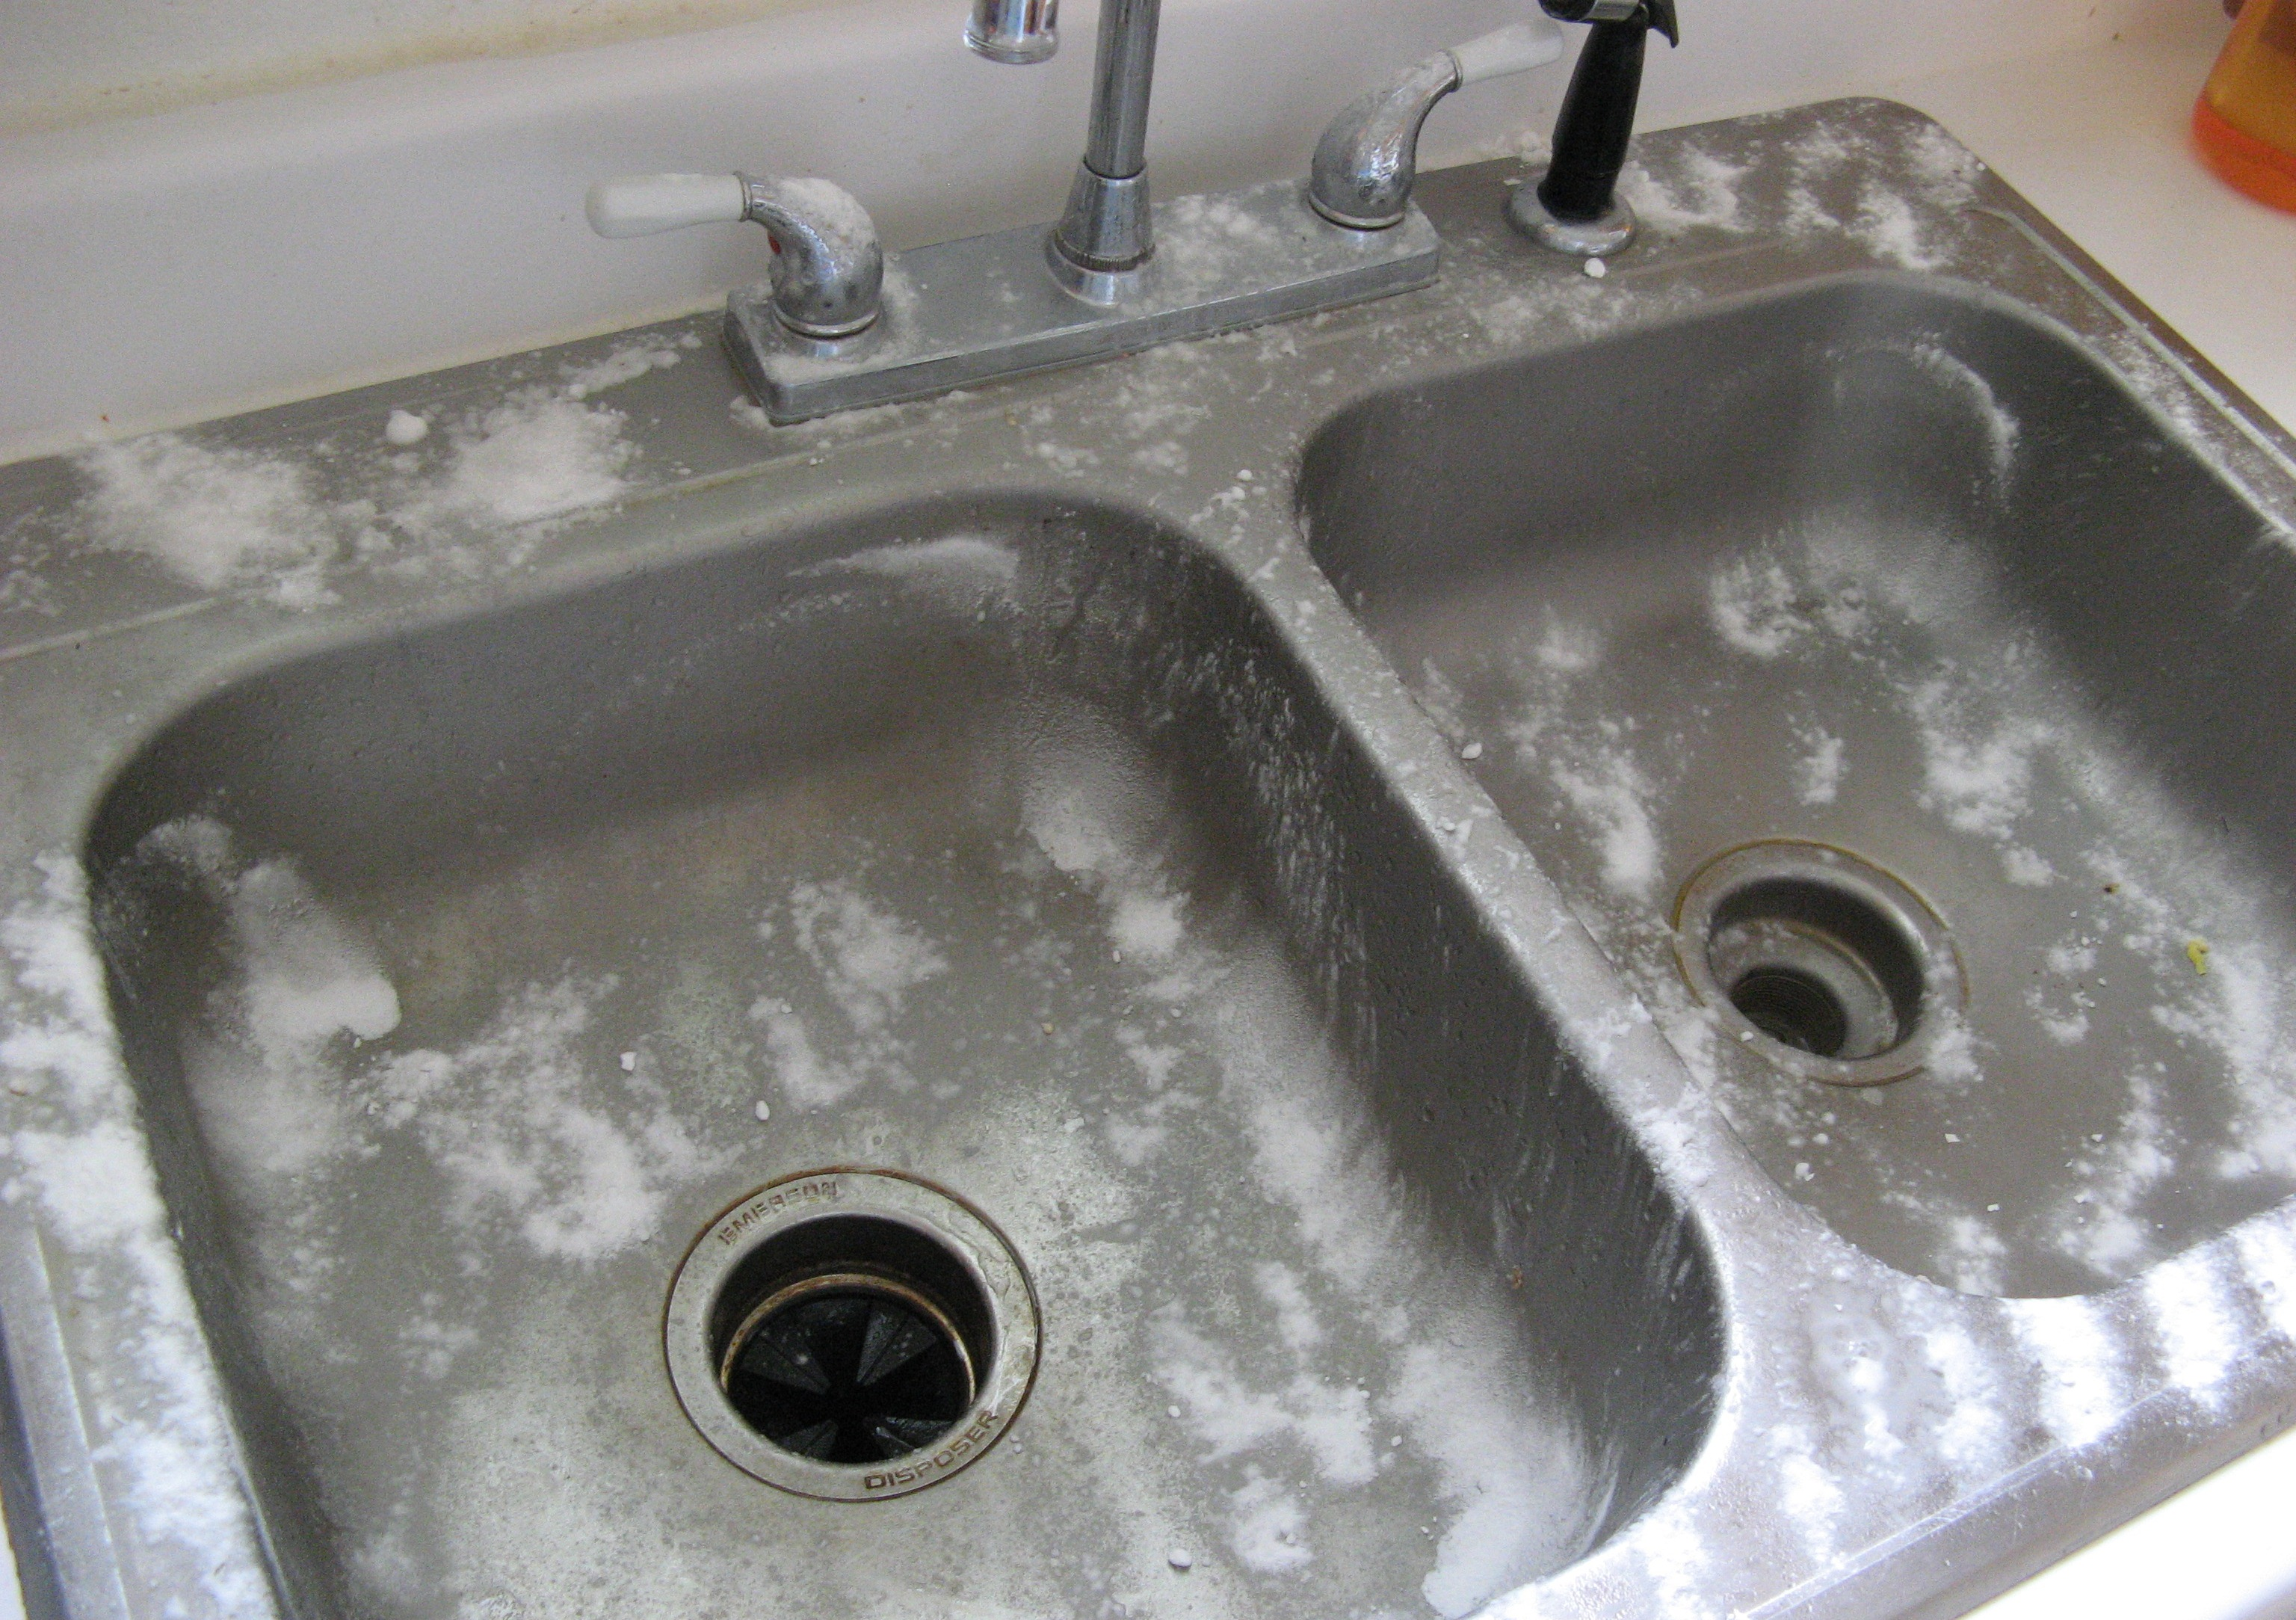 How to remove stains from stainless steel sink